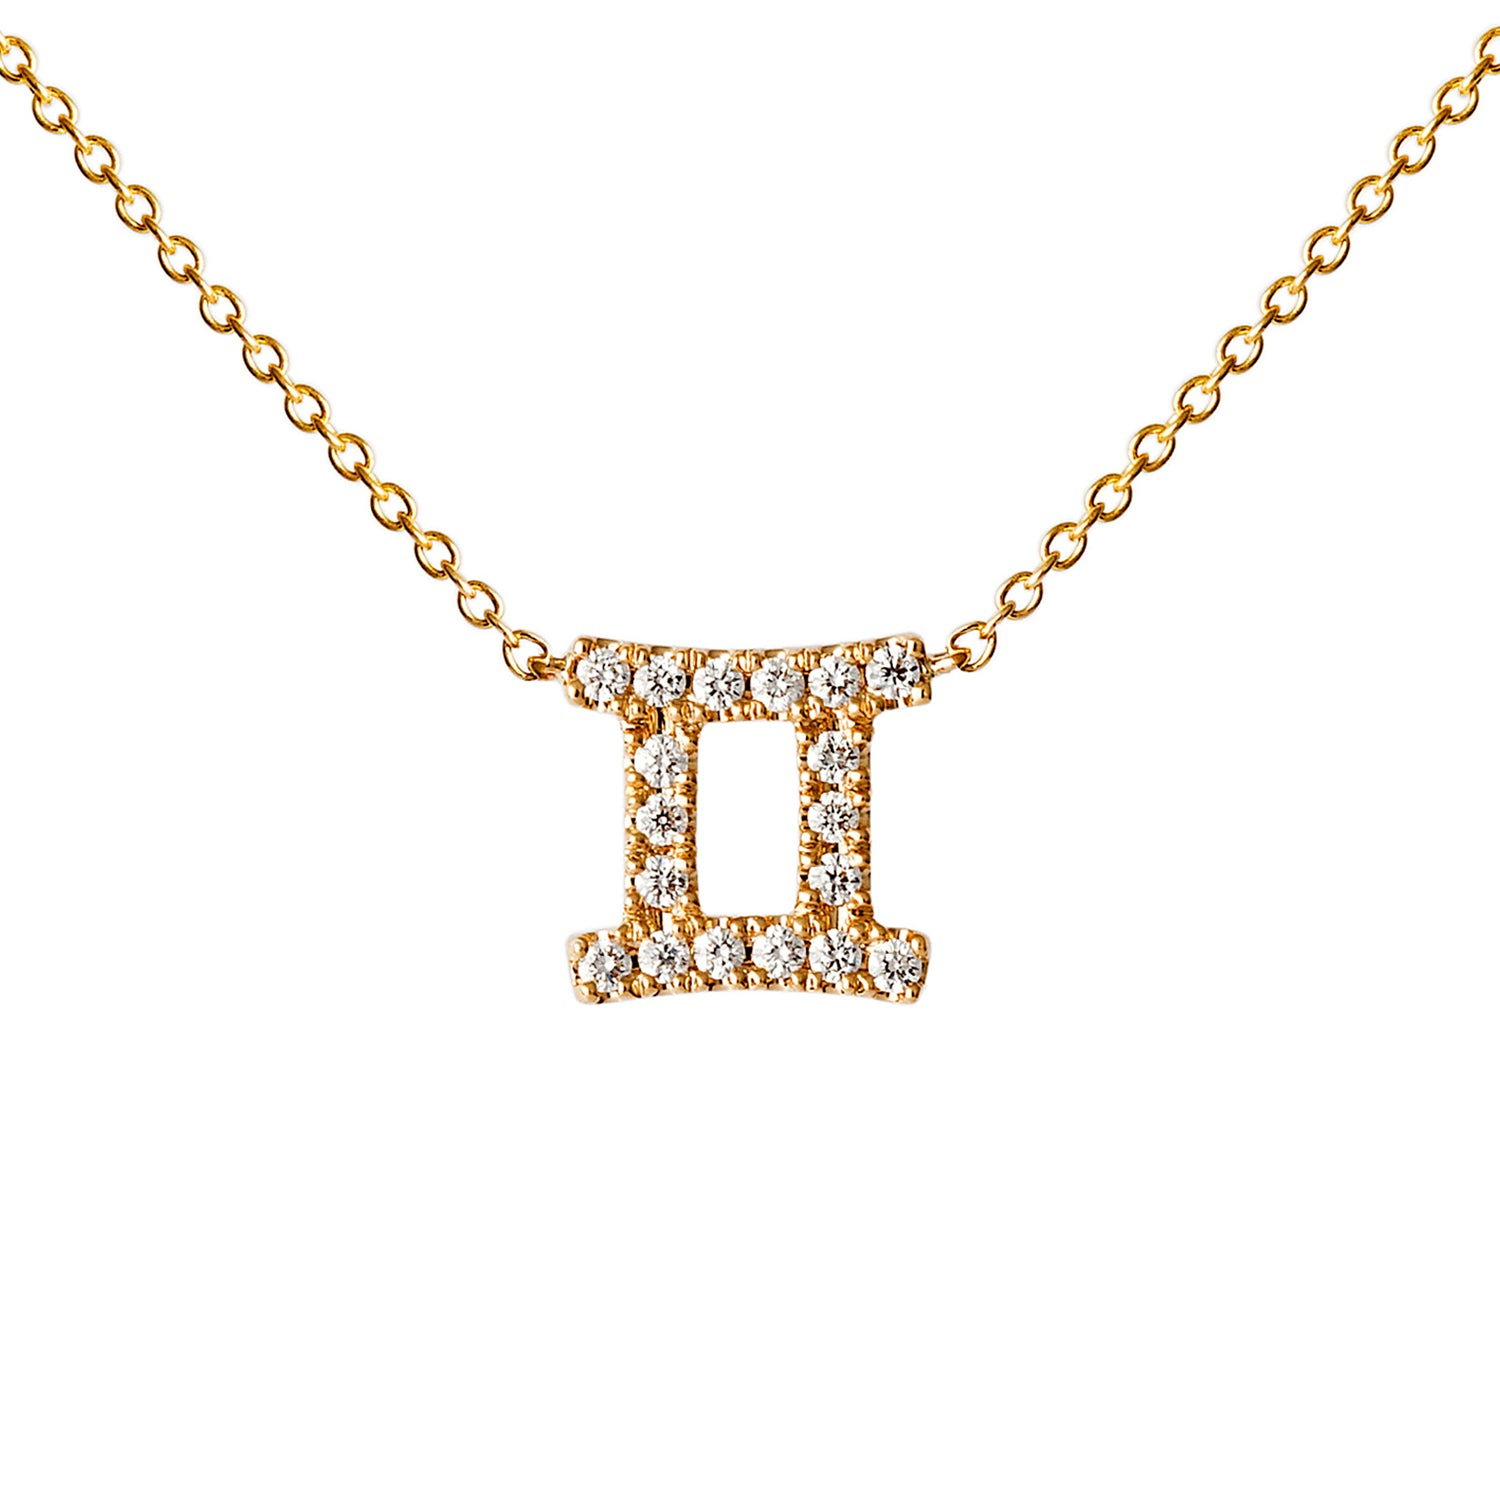 Petit Gemini Necklace - Engelbert - Necklaces | Broken English Jewelry